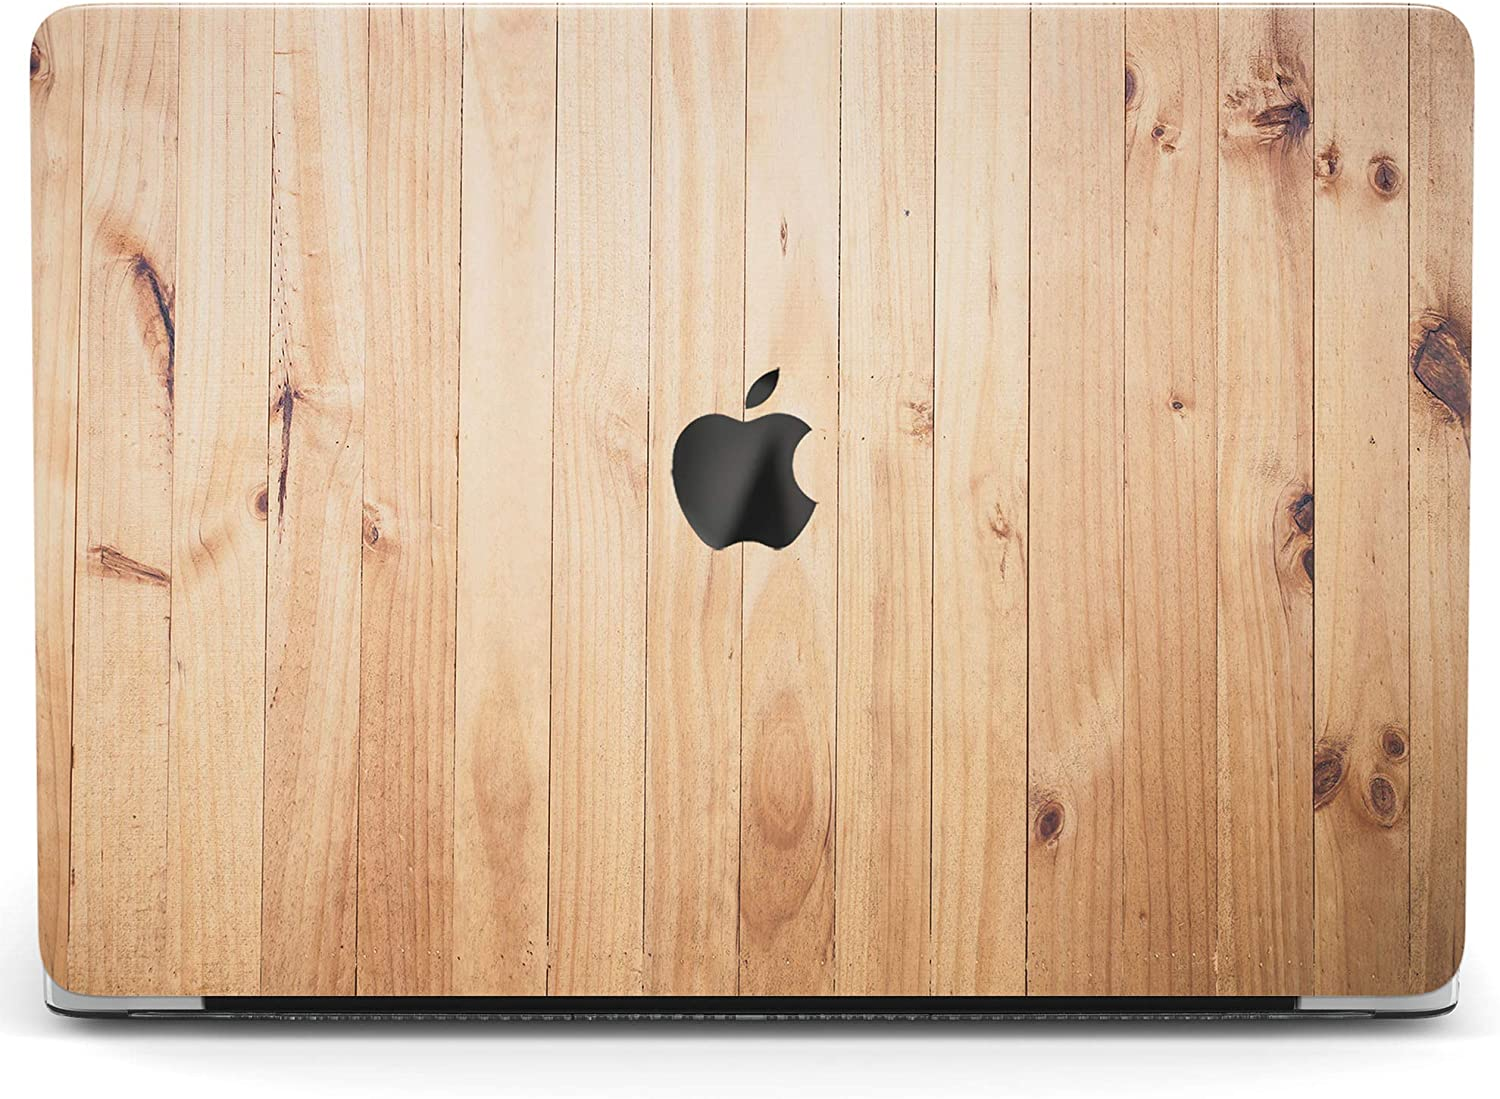 Wonder Wild Case for MacBook Air 13 inch Pro 15 2019 2018 Retina 12 11 Apple Hard Mac Protective Cover Touch Bar 2017 2016 2020 Plastic Laptop Print Light Wood Bamboo Vertical Nature Planks Pattern